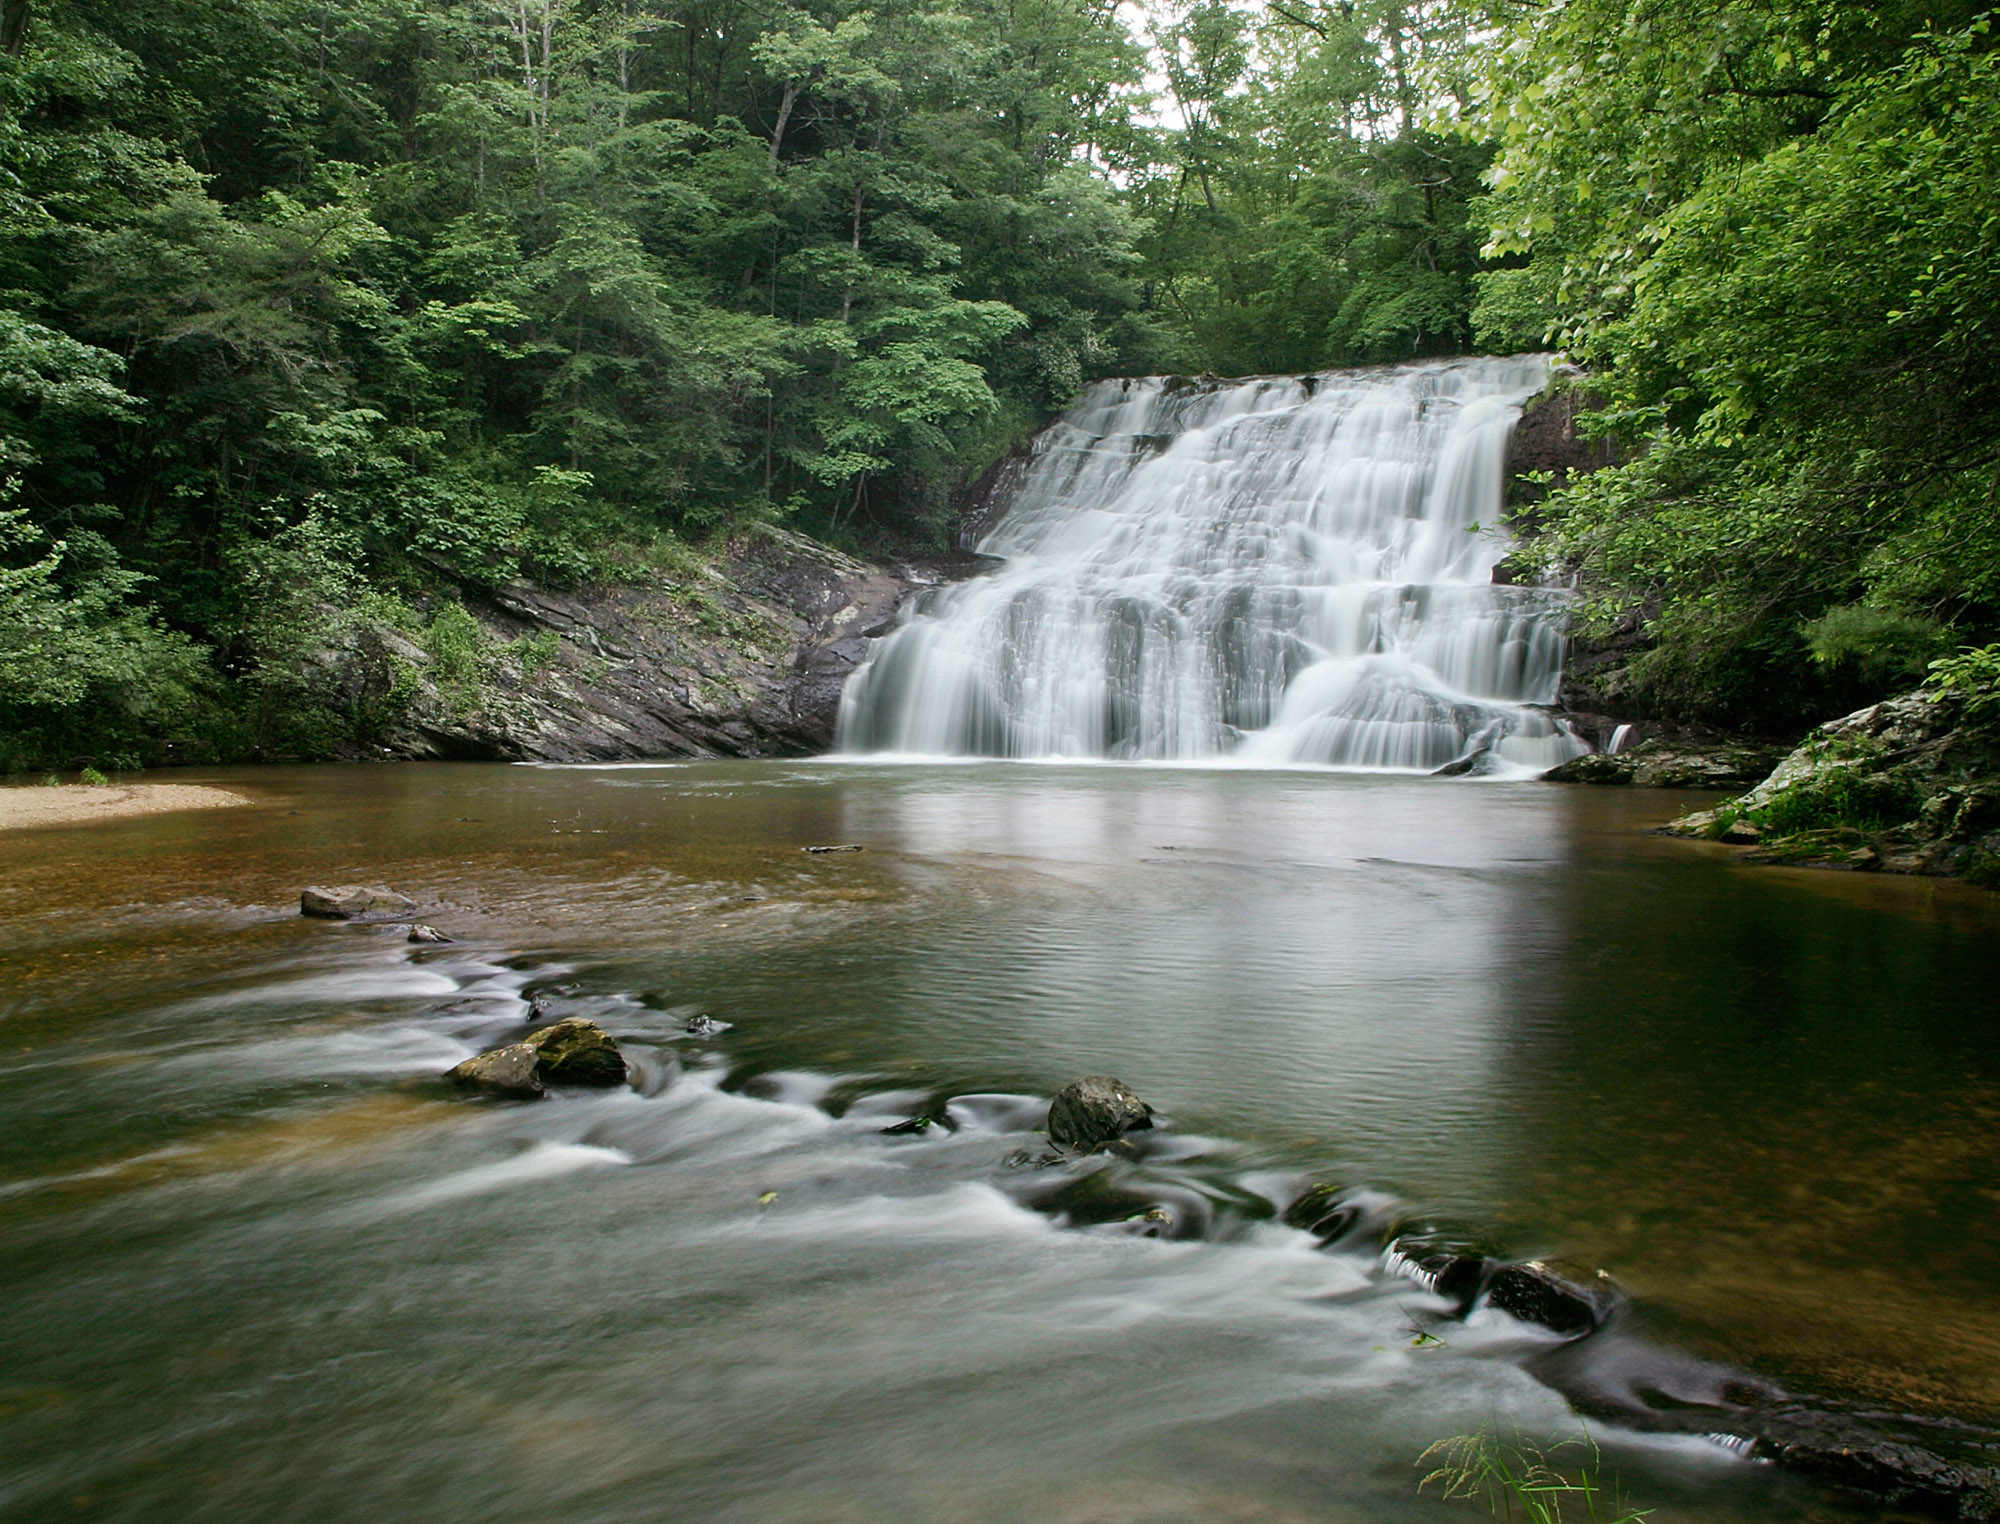 Cane Creek Falls in Dahlonega. Photo by Jack Anthony